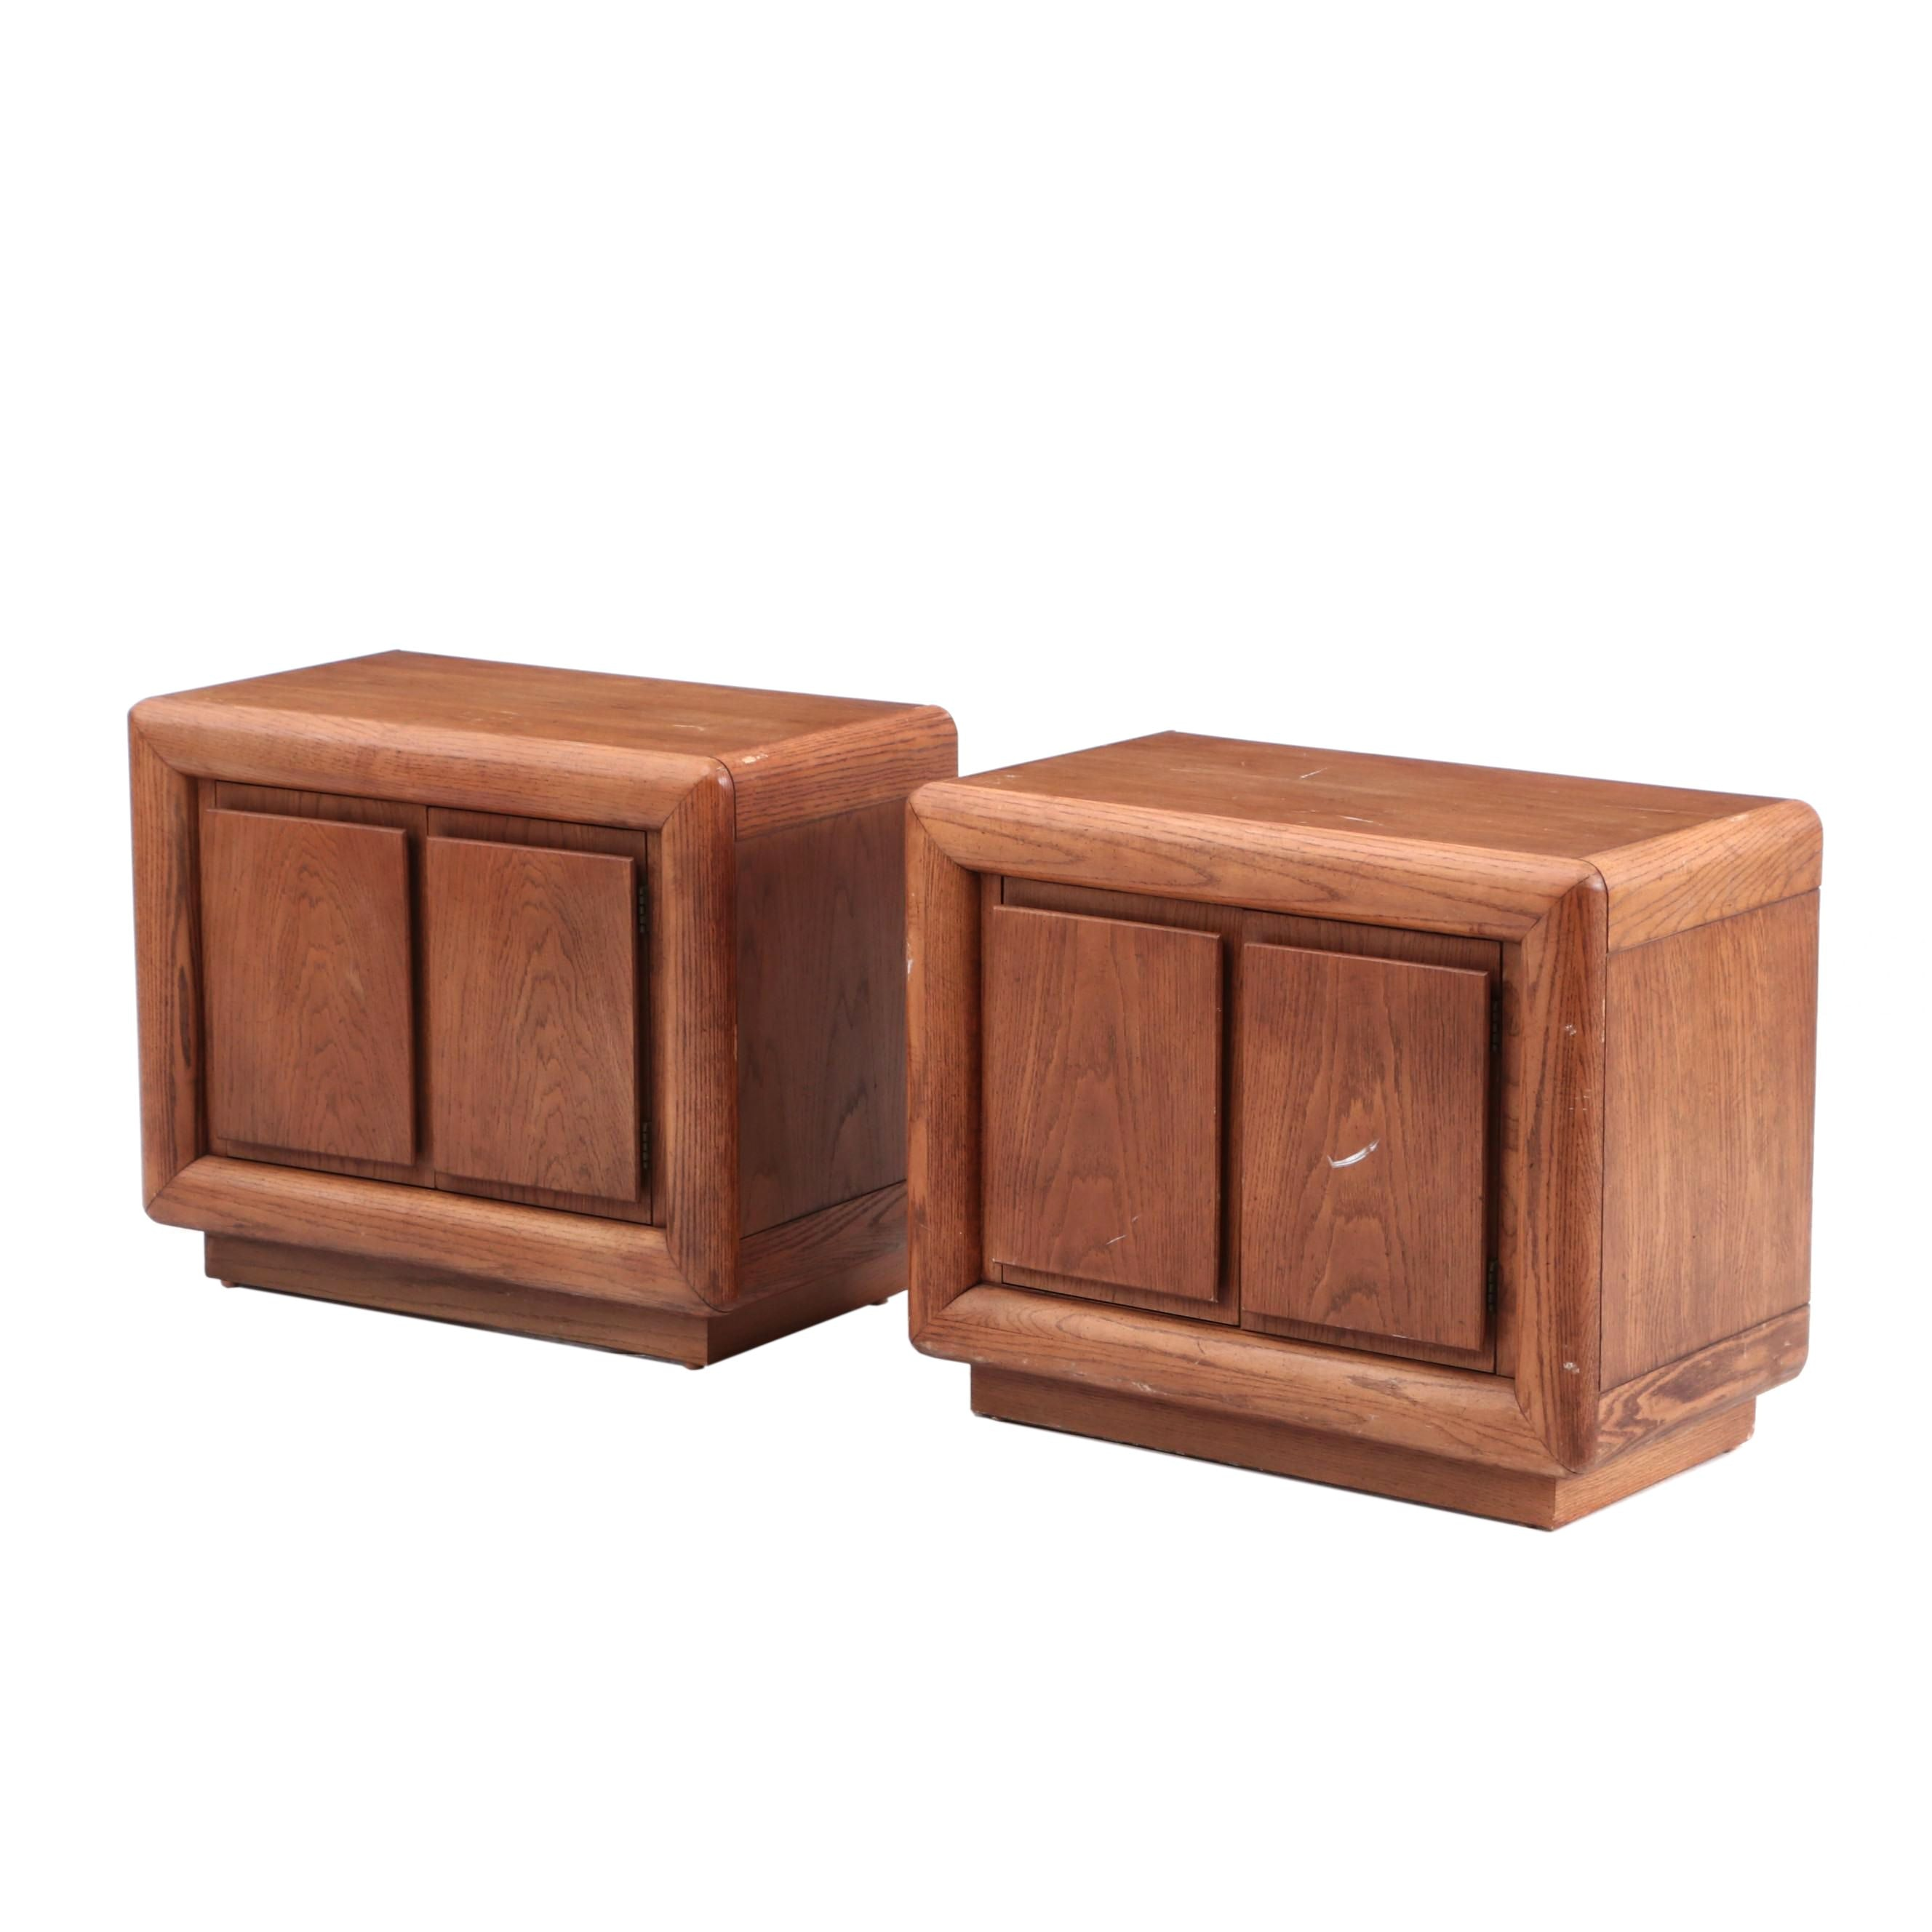 Pair of Thomasville End Tables in Oak